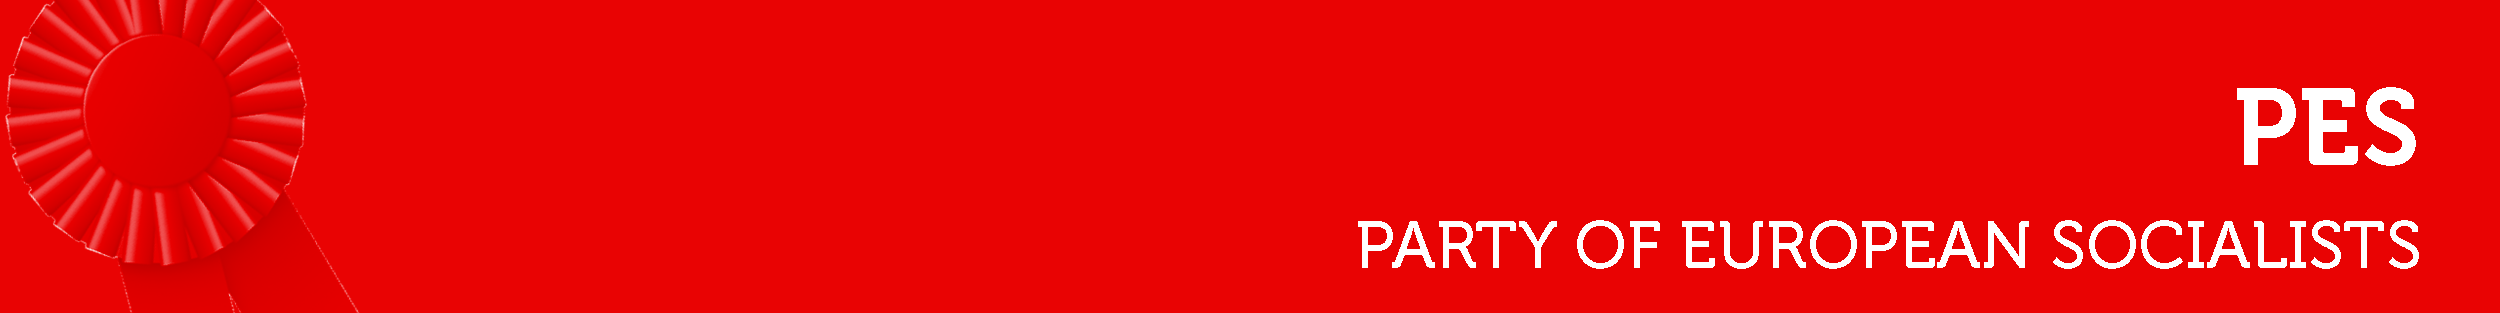 Party banners - PES